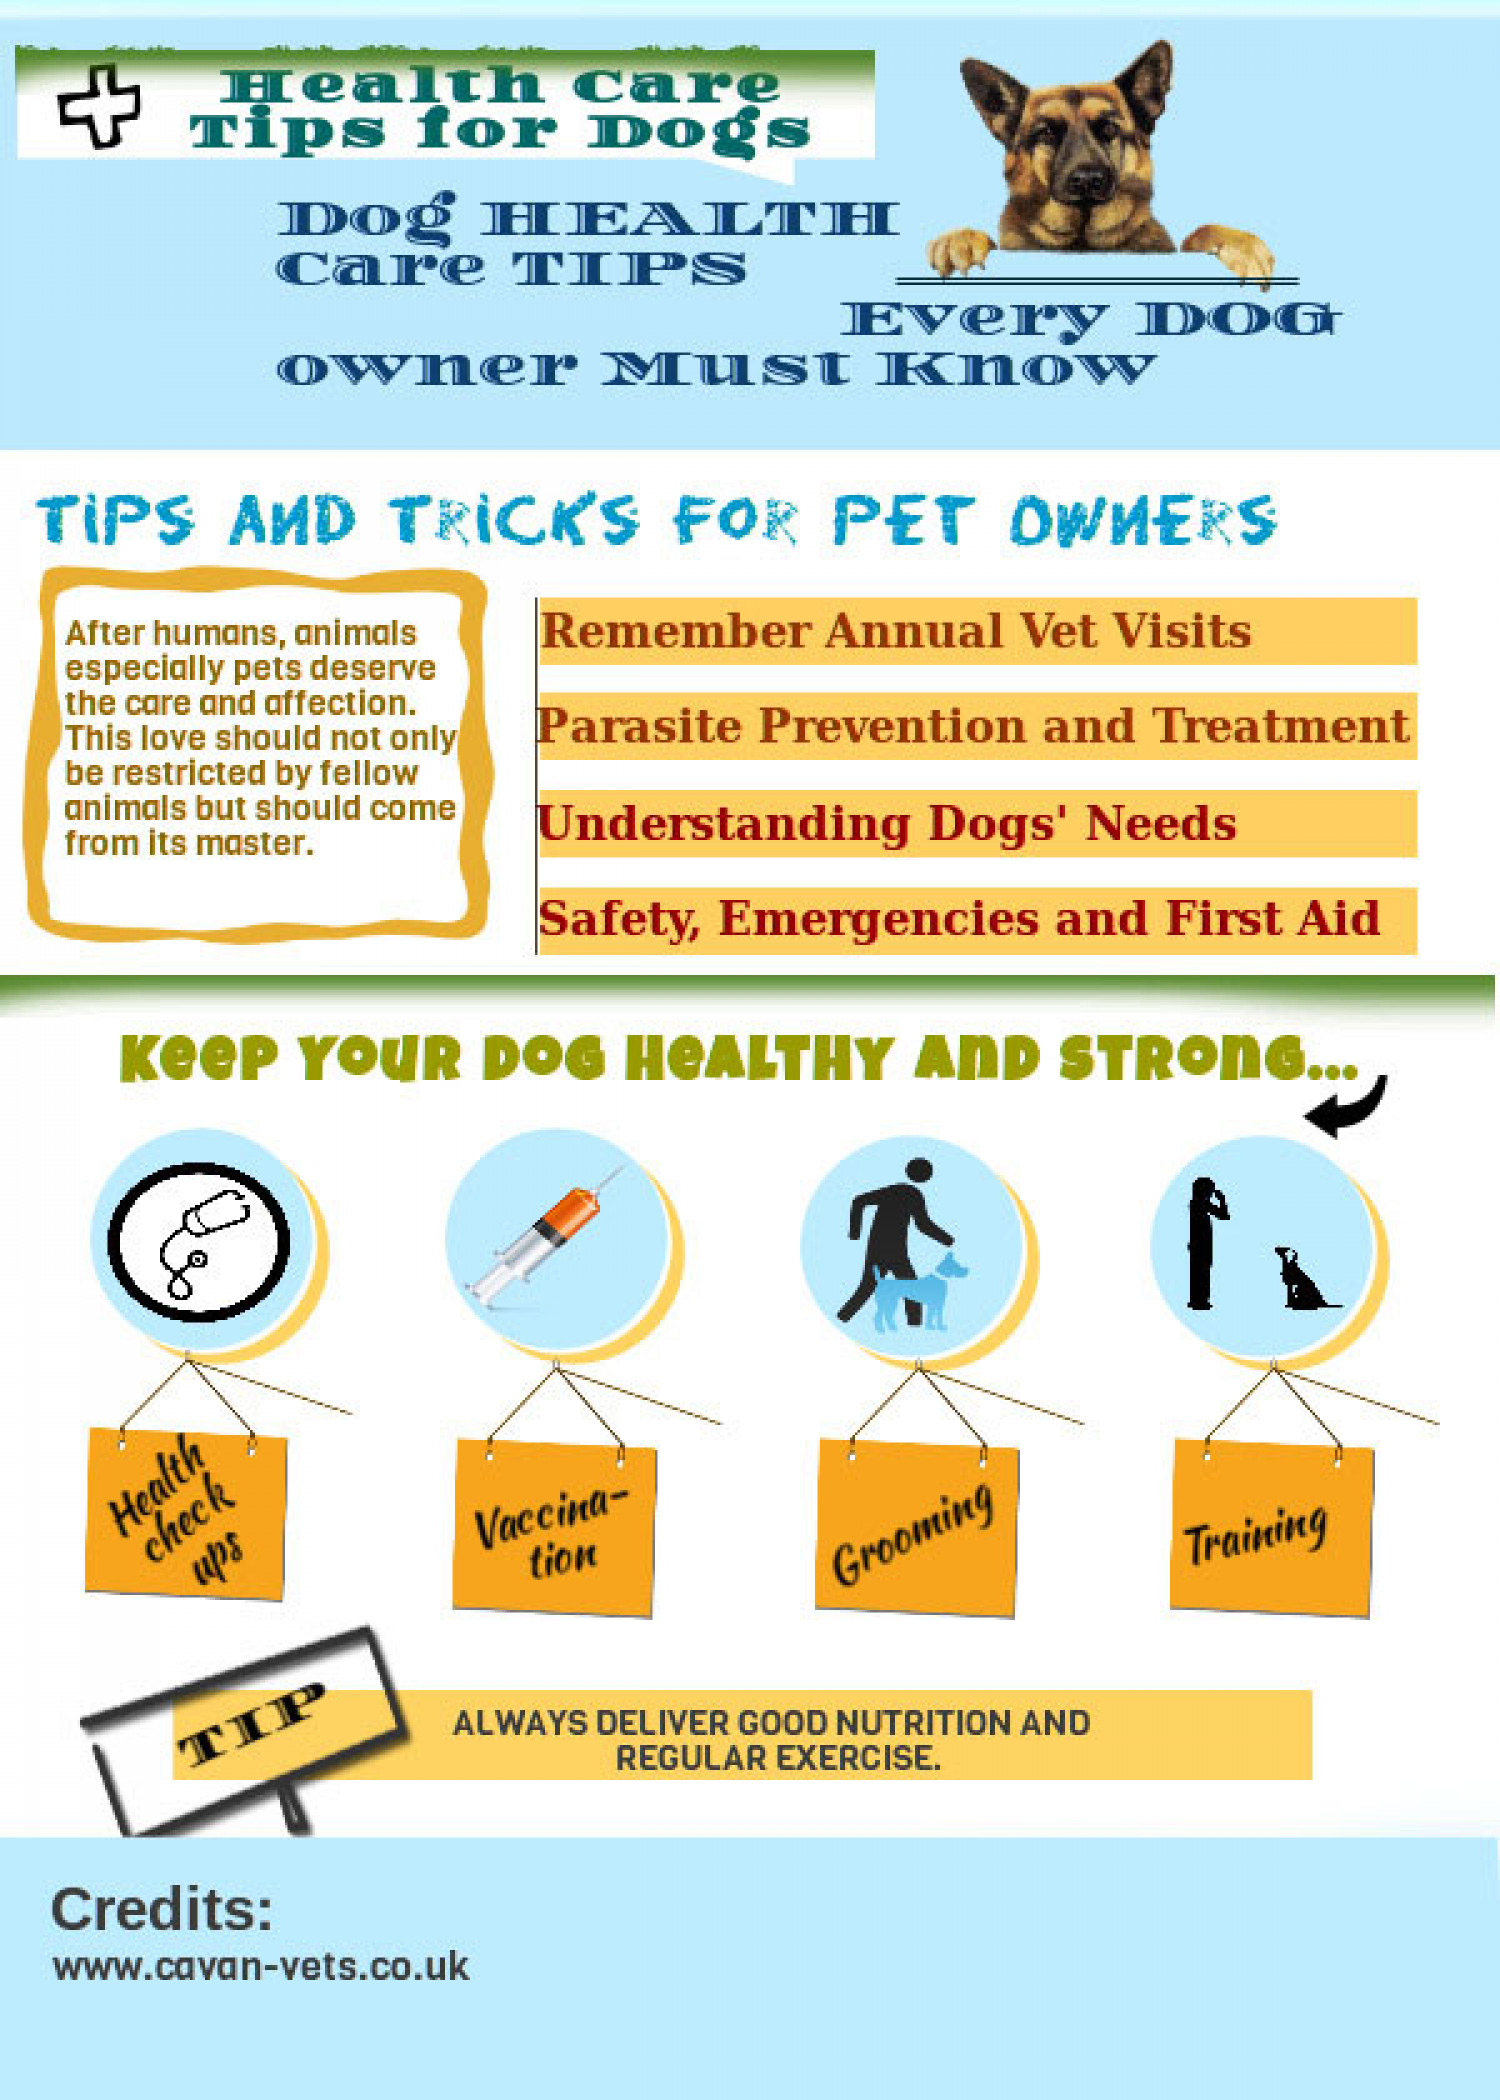 Dog Health Care Tips Infographic